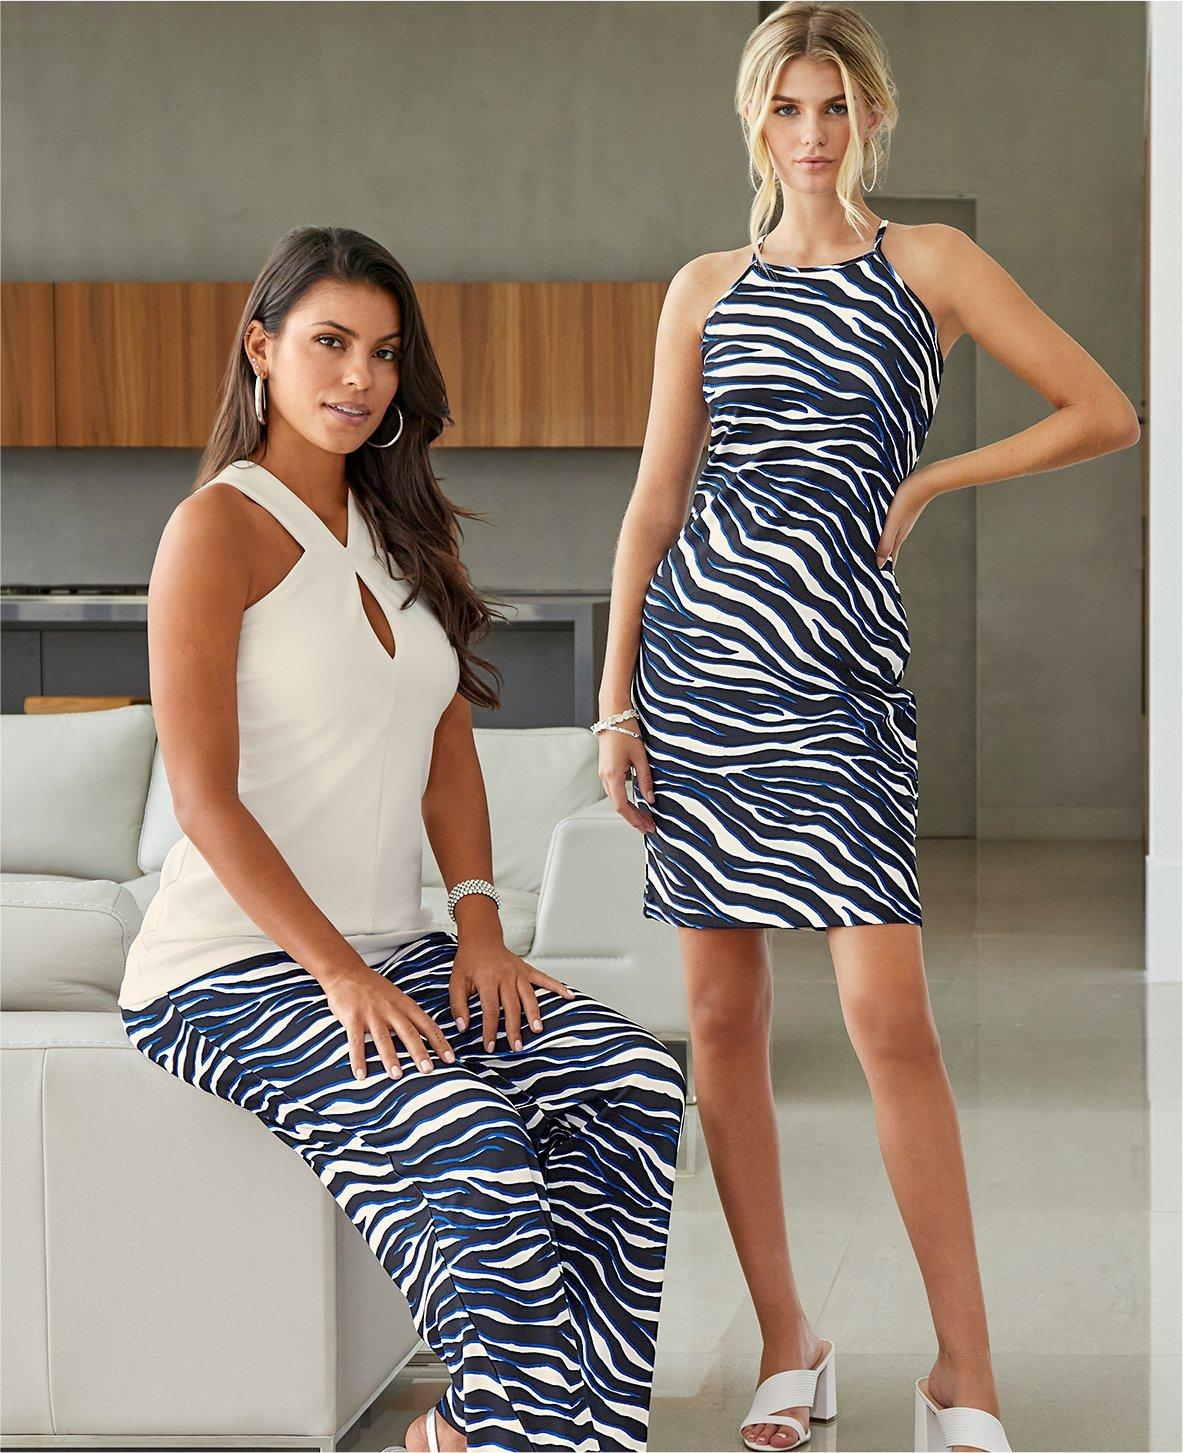 left model wearing a white keyhole halter top and blue and white zebra striped palazzo pants. right model wearing a sleeveless blue and white zebra print dress.